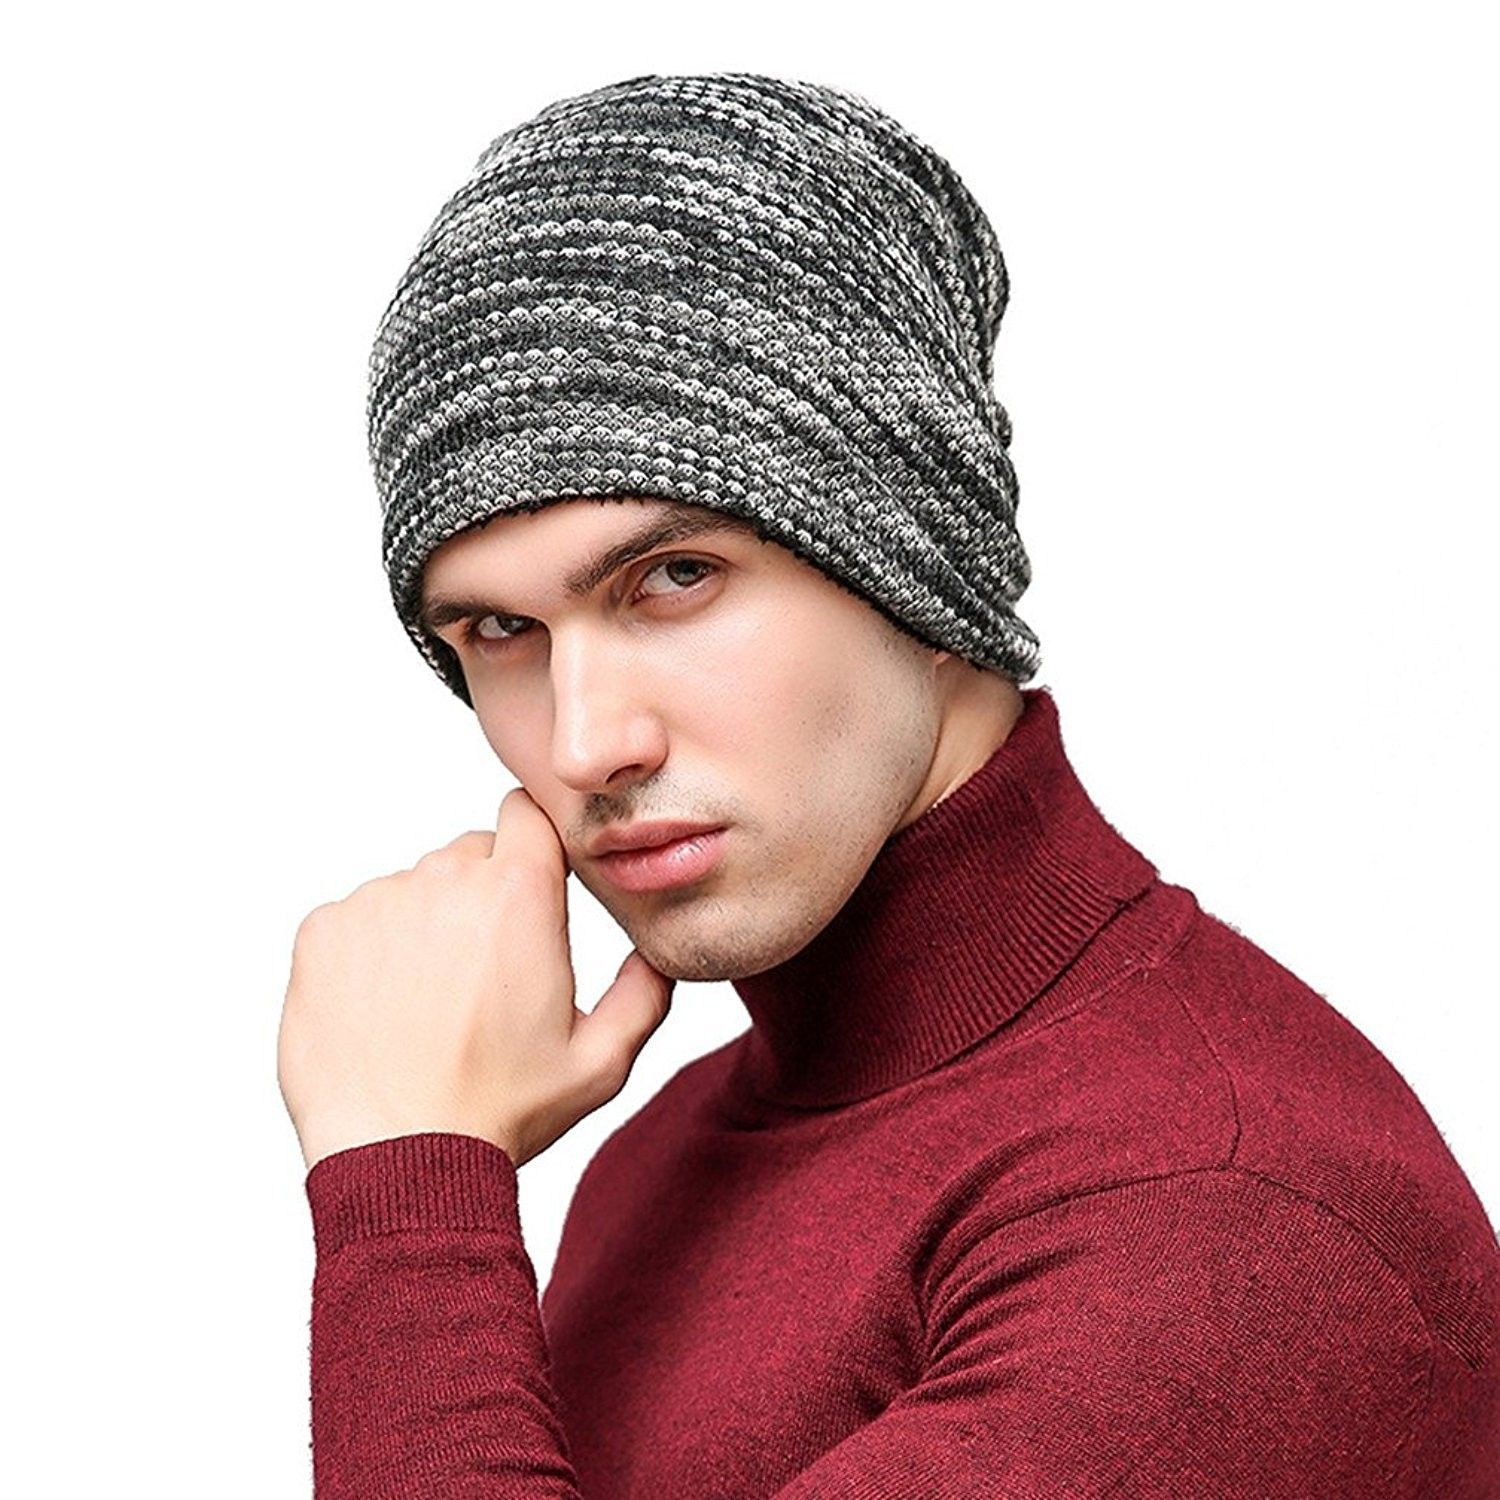 bca3f82301172 Mens and Womens Thicken and Fleece Lining Knit Beanie Hat Winter Hat  Slouchy Warm Cap - Gray - C3186RMHAD7 - Hats   Caps